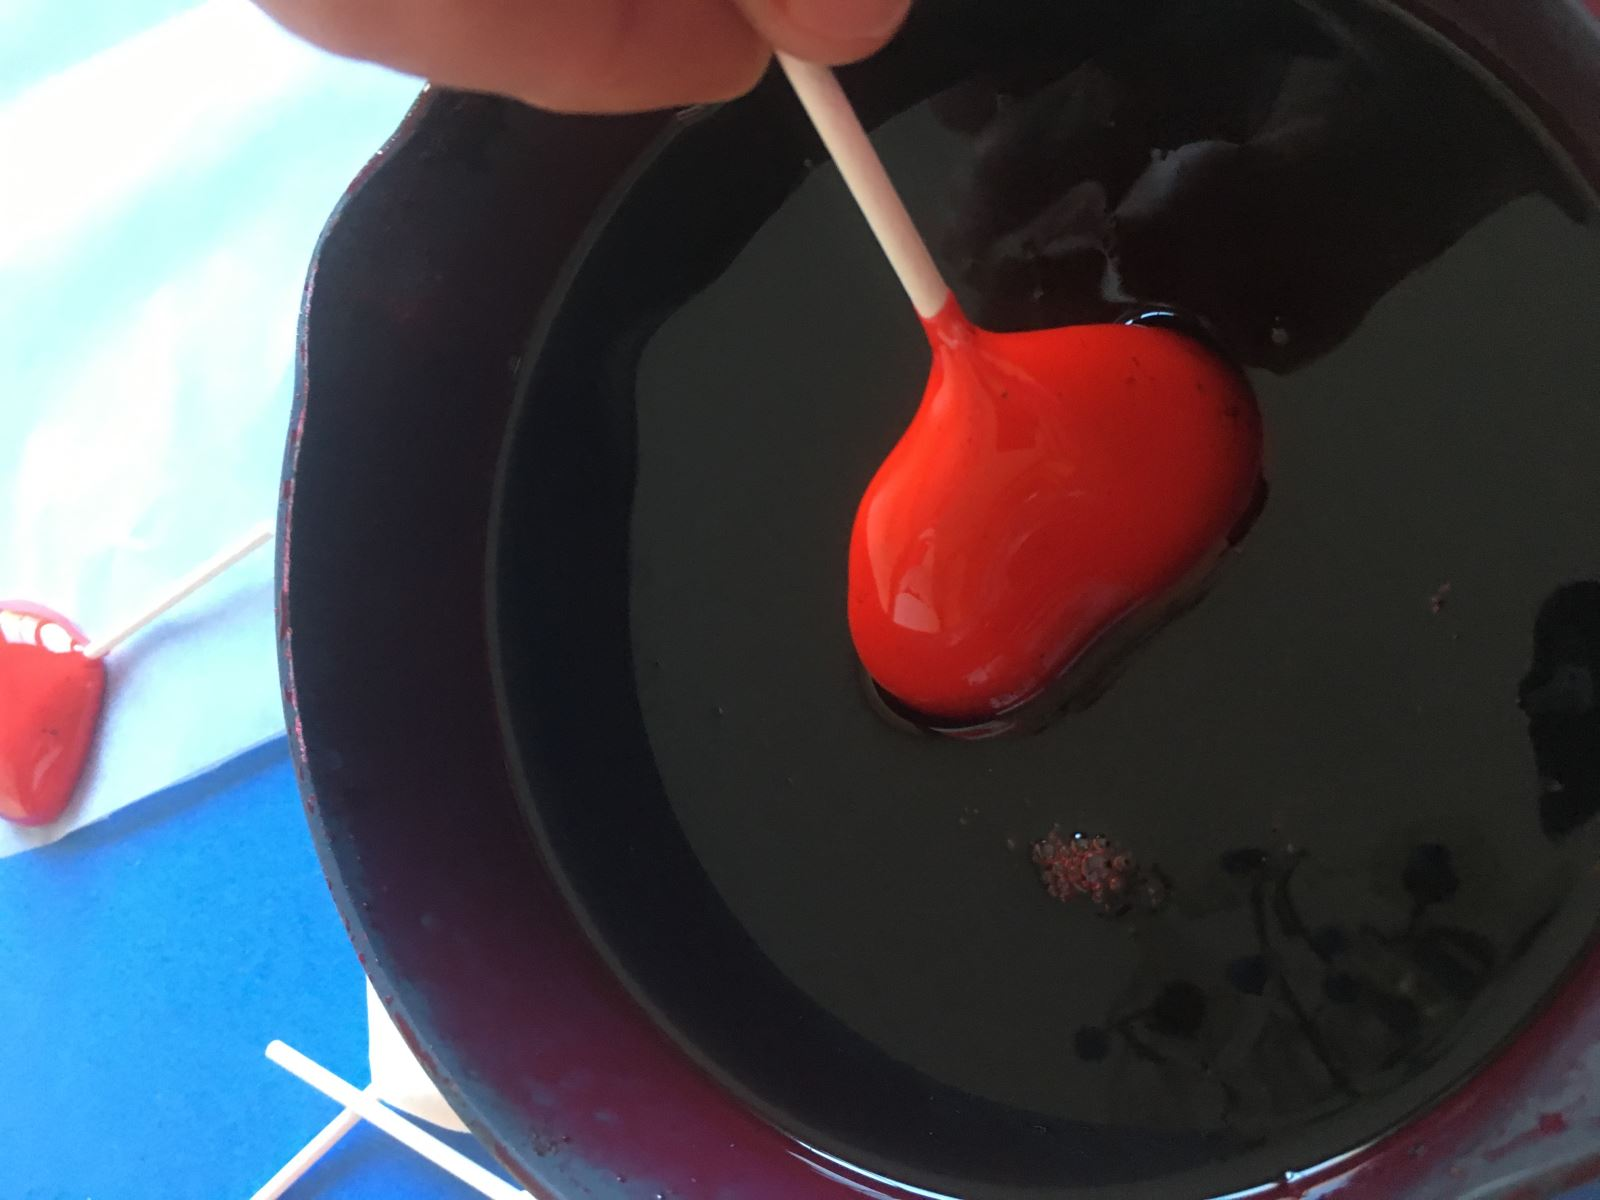 Allow to dry before dipping into the boiled isomalt sugar.